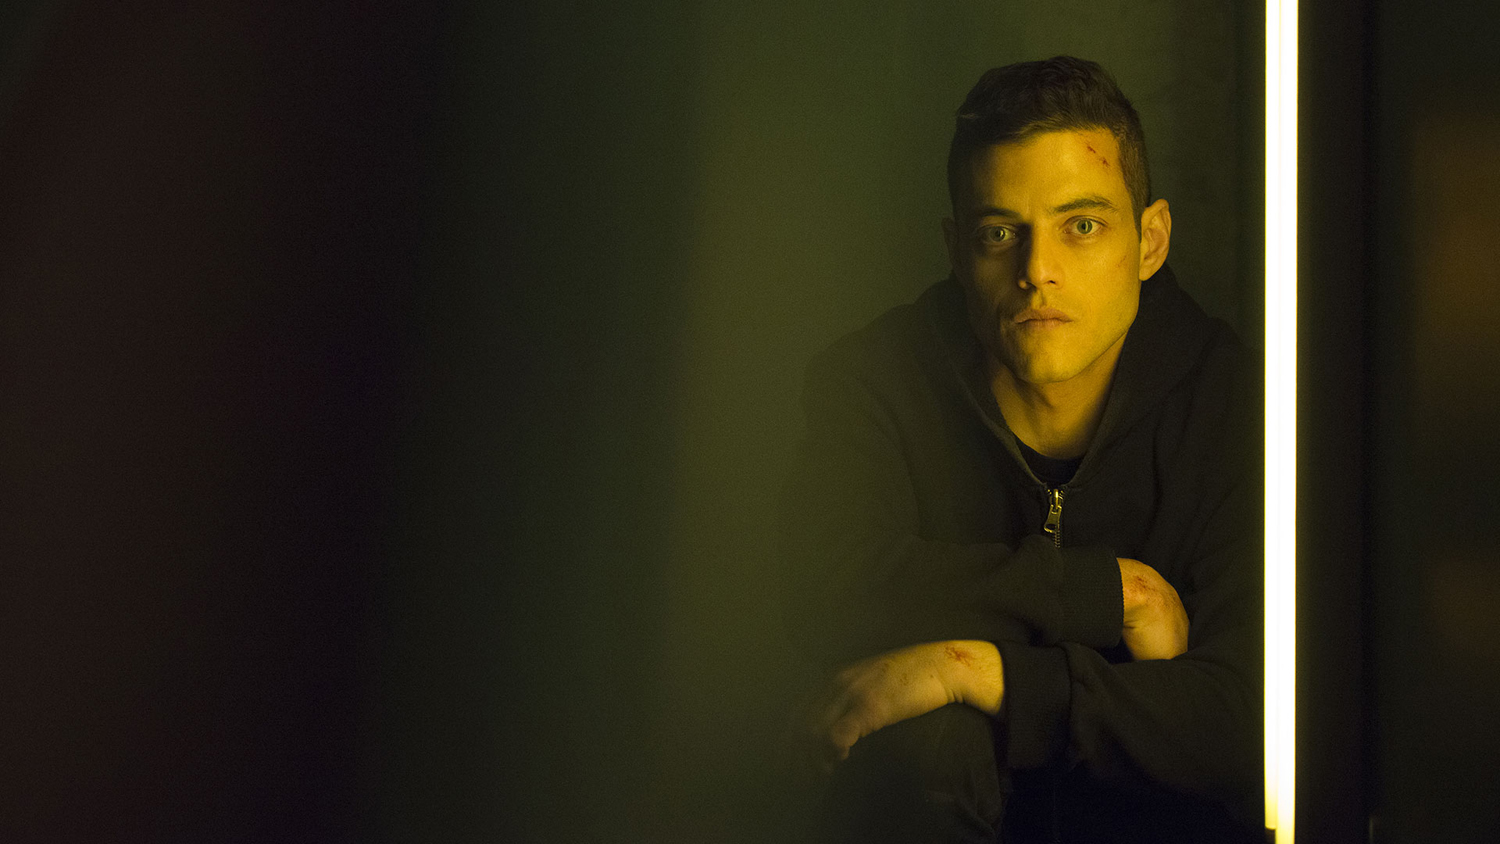 Mr Robot Elliot 01